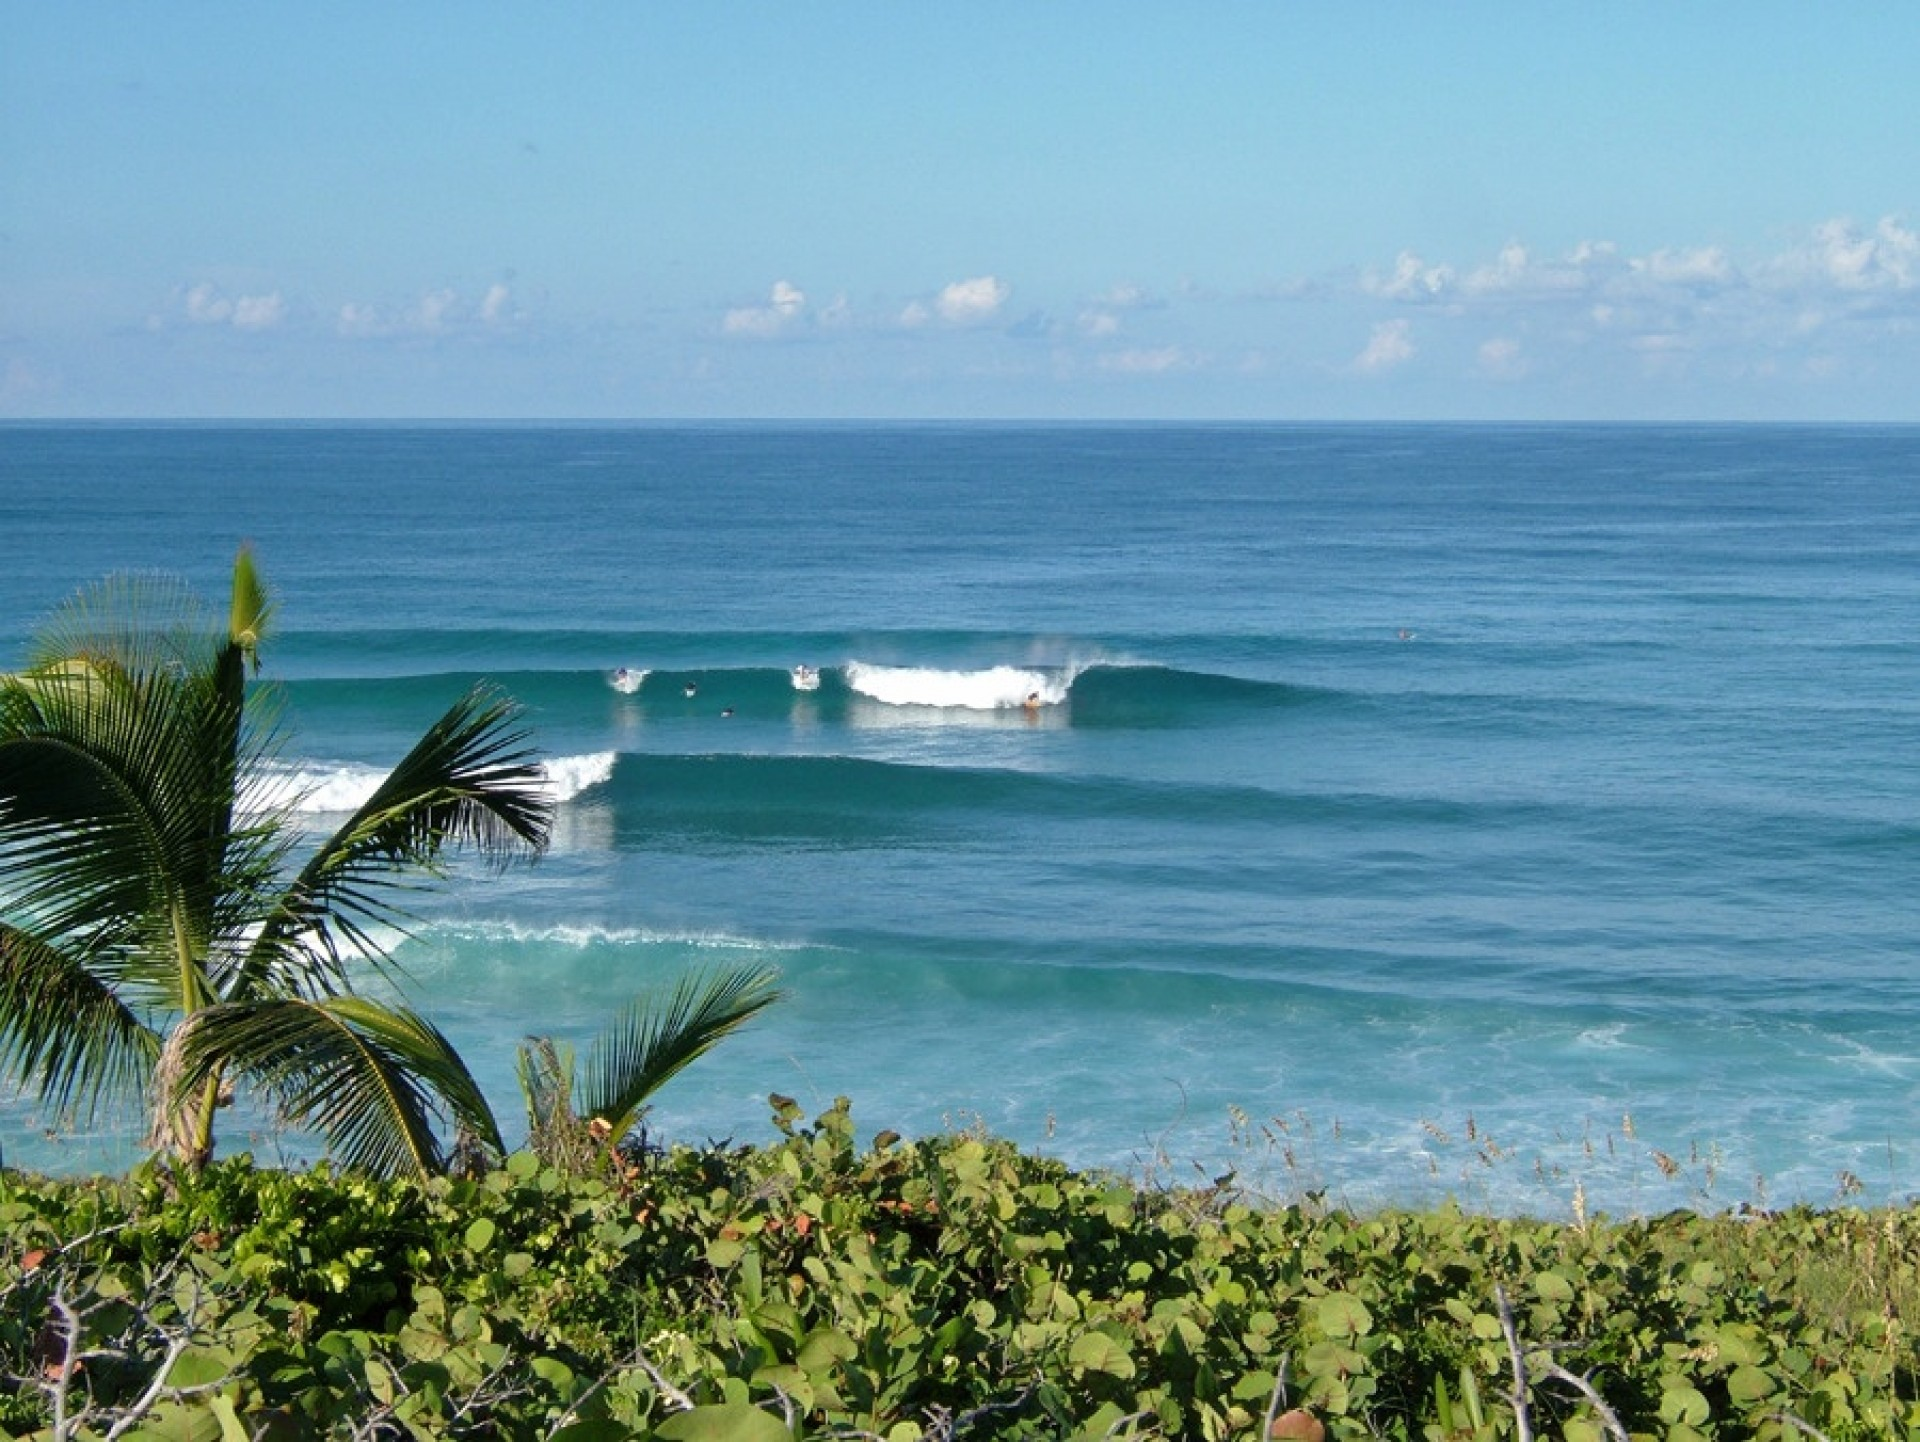 El Mürko's photo of Surfers Beach